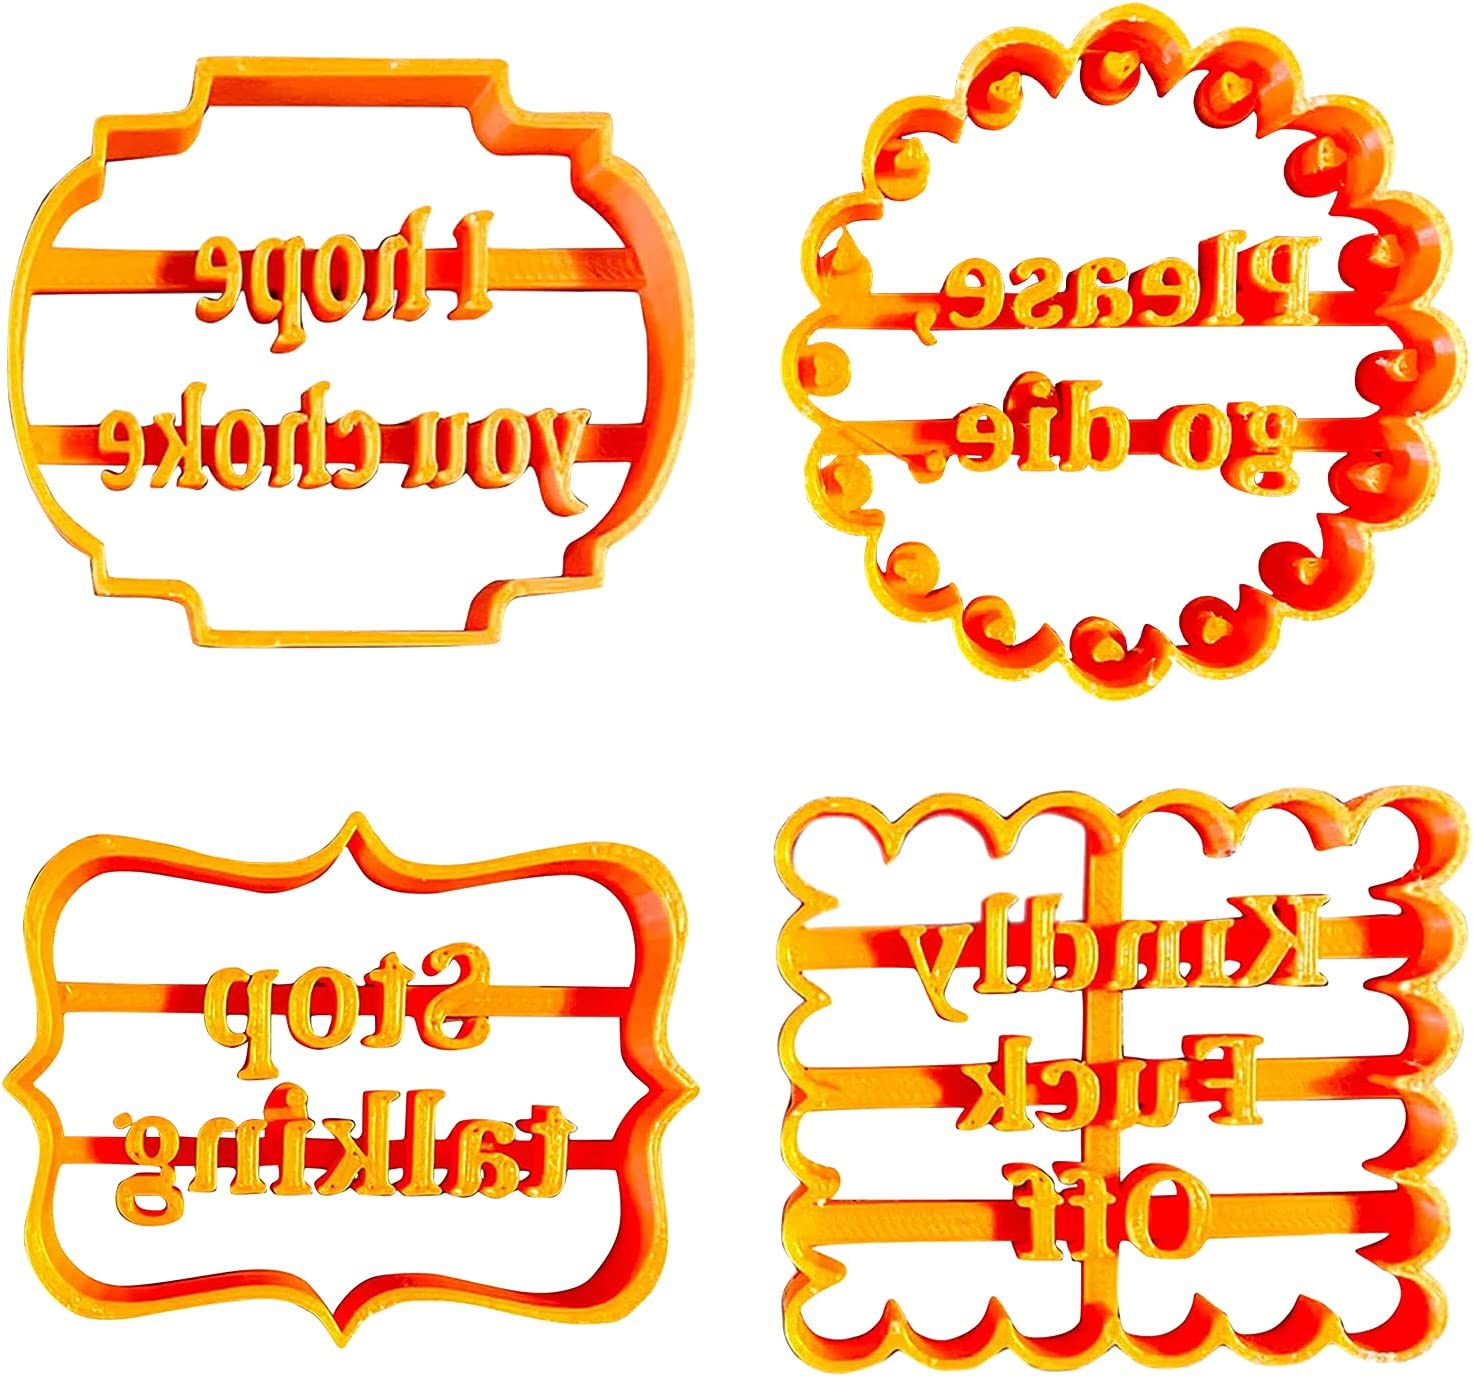 Max 57% Mesa Mall OFF Cookie Molds with Good Wishes and Irreveren Fun Form